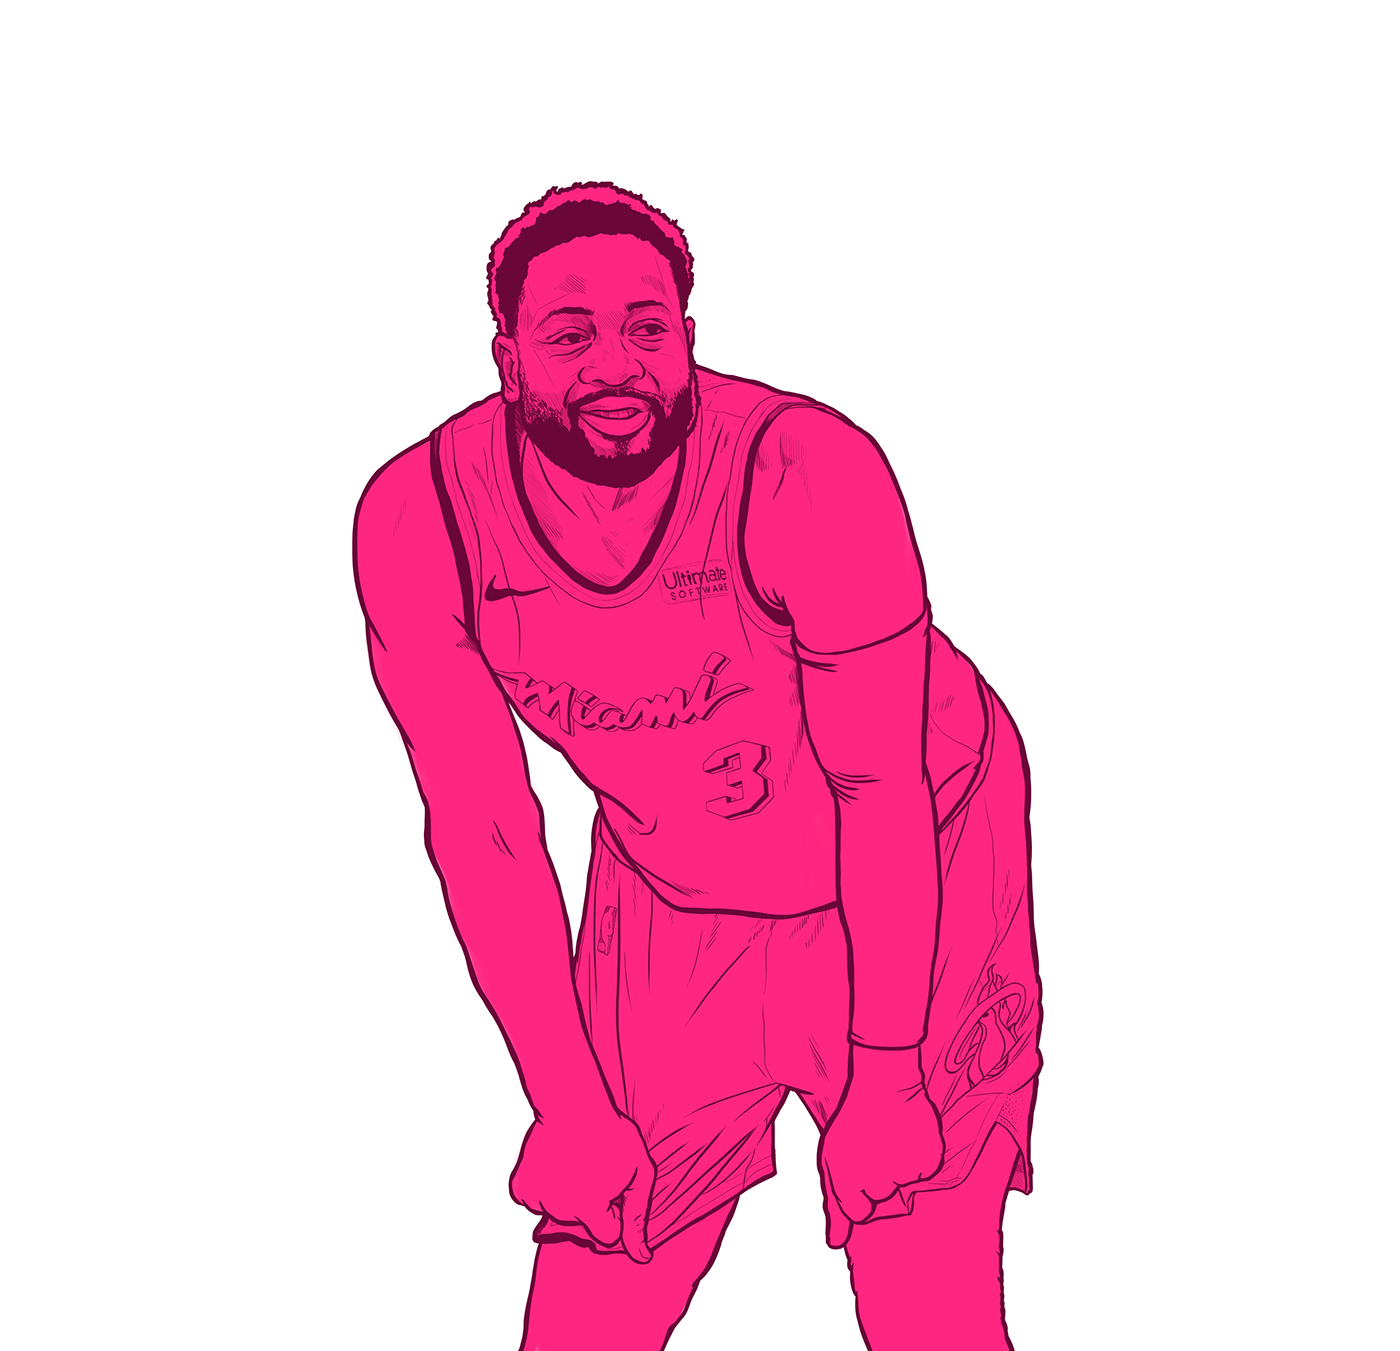 Nba Dwyane Wade Bday Illustration Miami Vice Edition On Behance